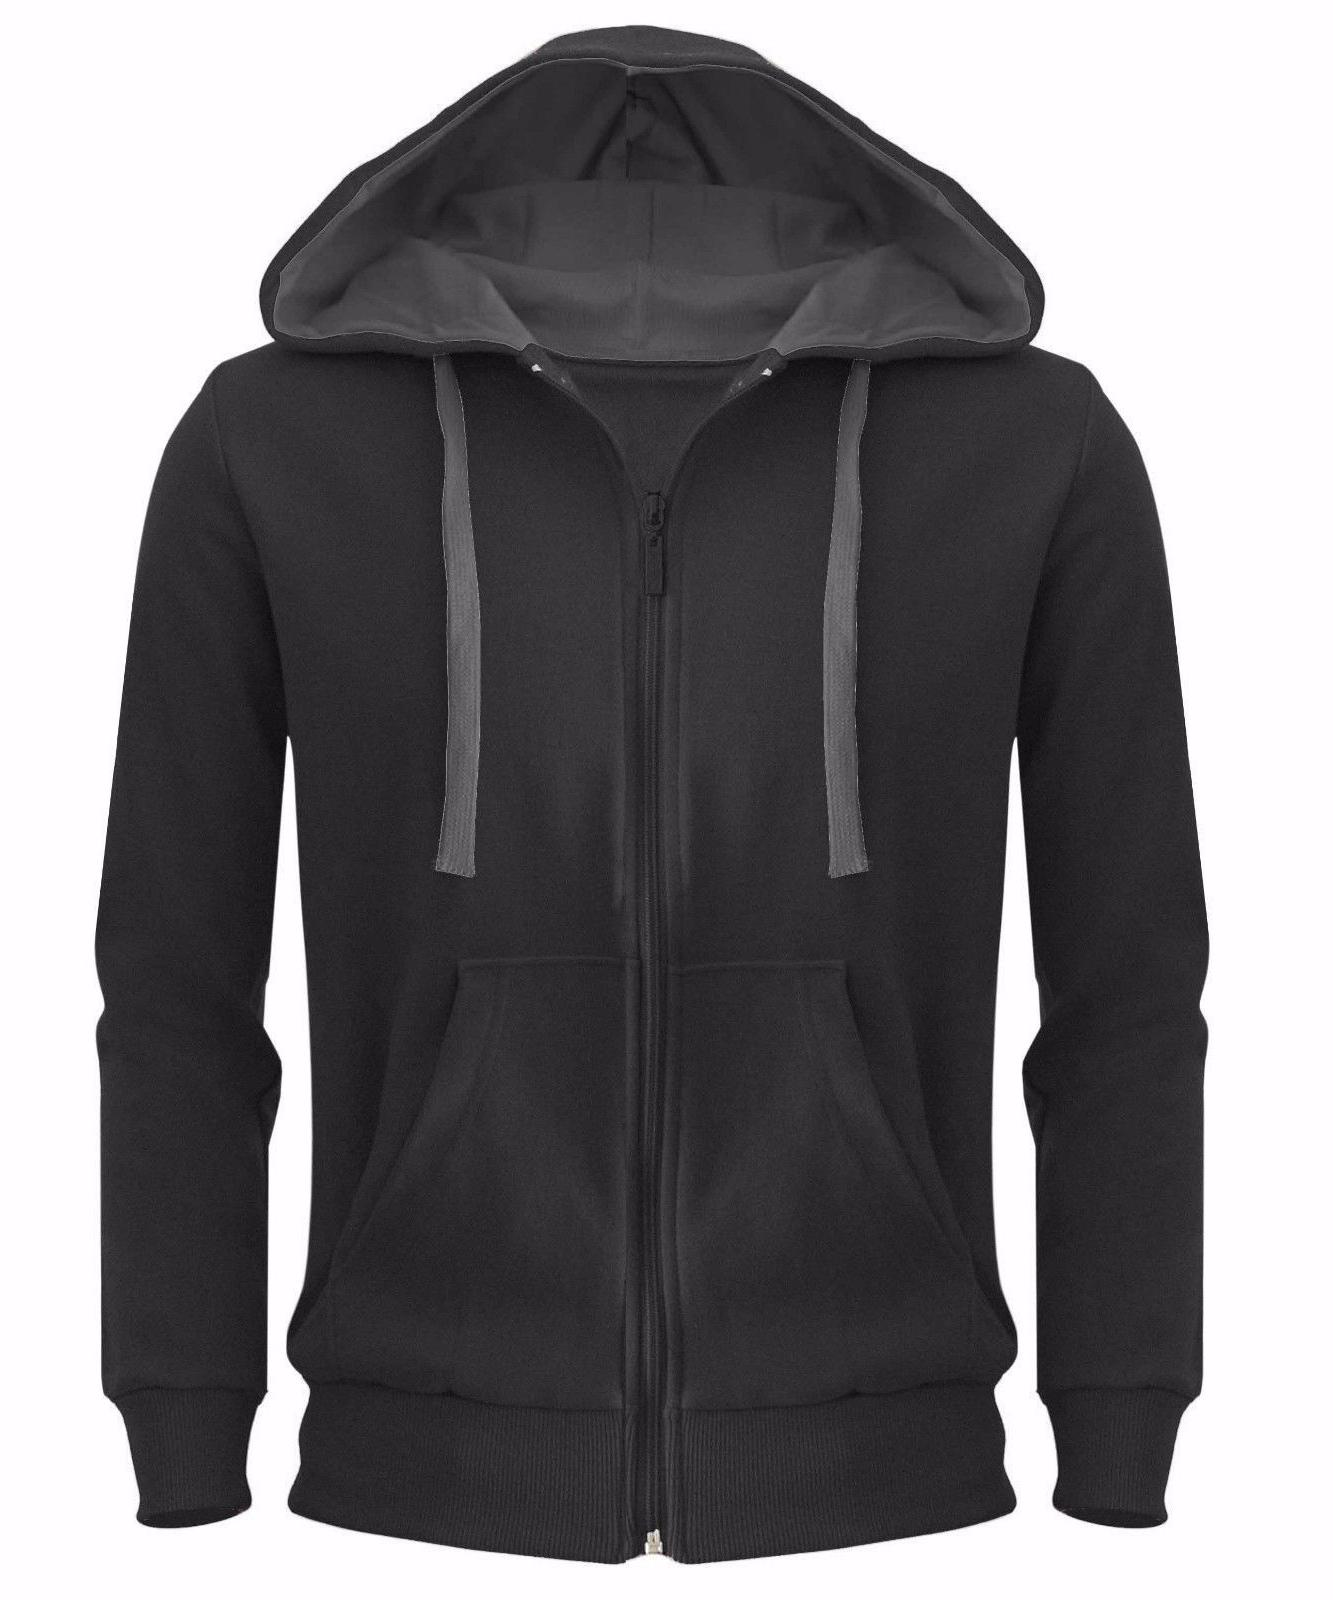 Mens Plain Hoodie Zipper Top